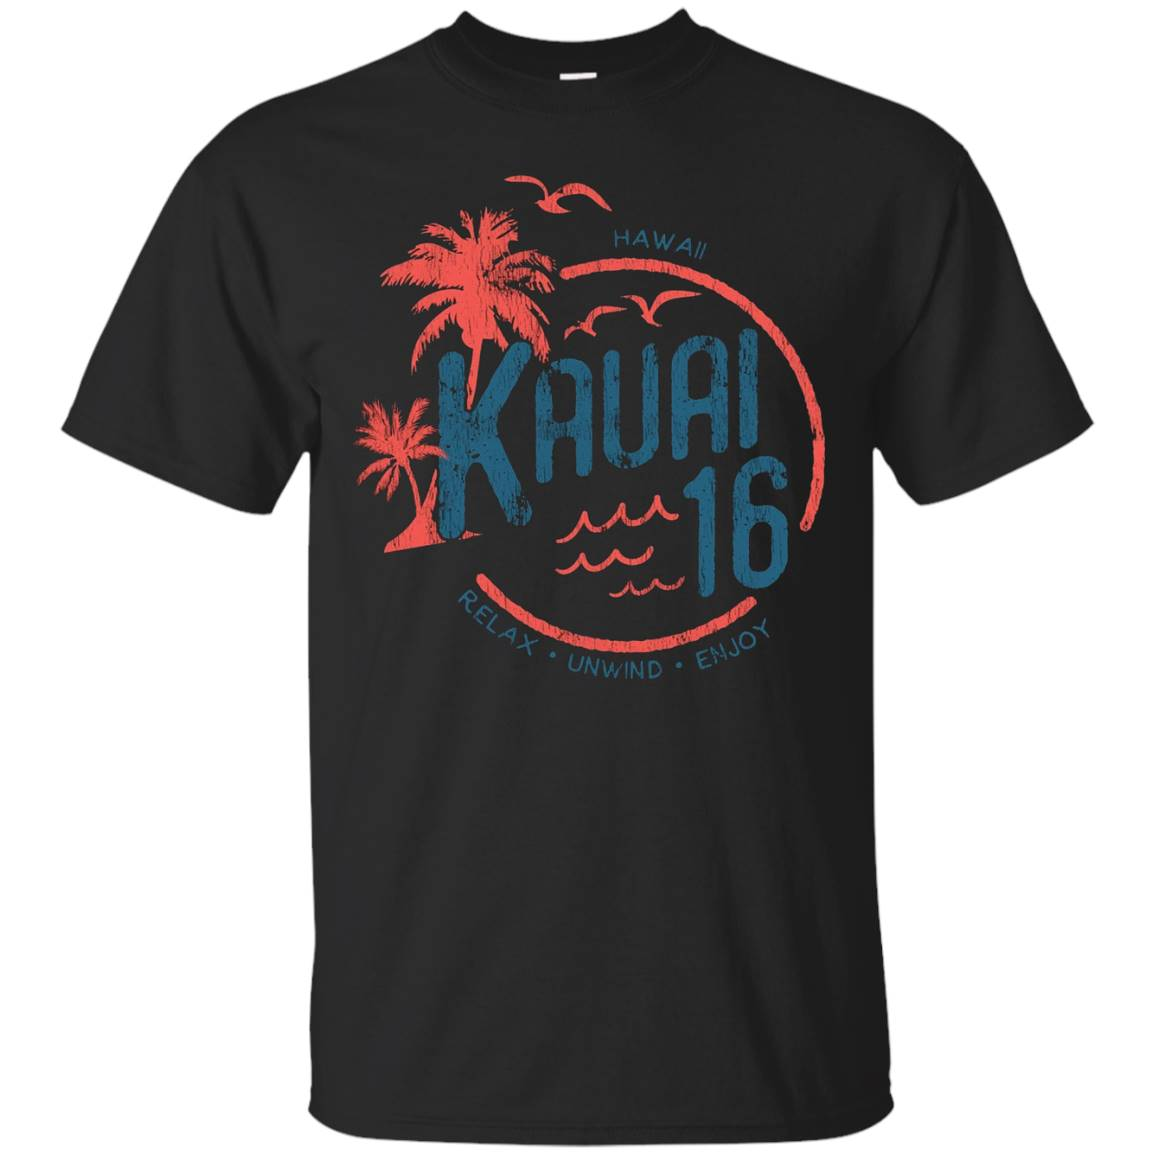 Kauai Hawaii 2016 Vintage Distressed Beach and Palm Tee – T-Shirt